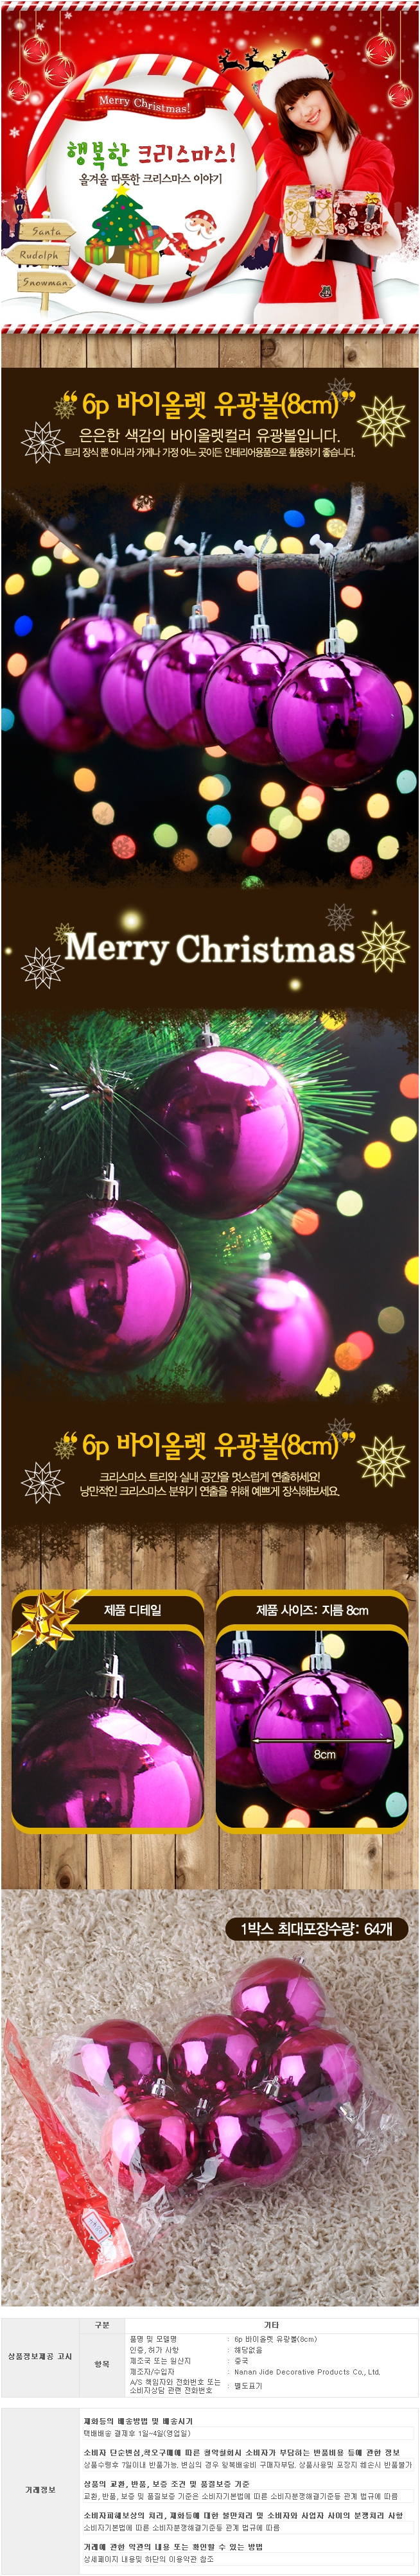 [ WINEQOK ] Christmas Goods / Violet Glossy Ball 1p